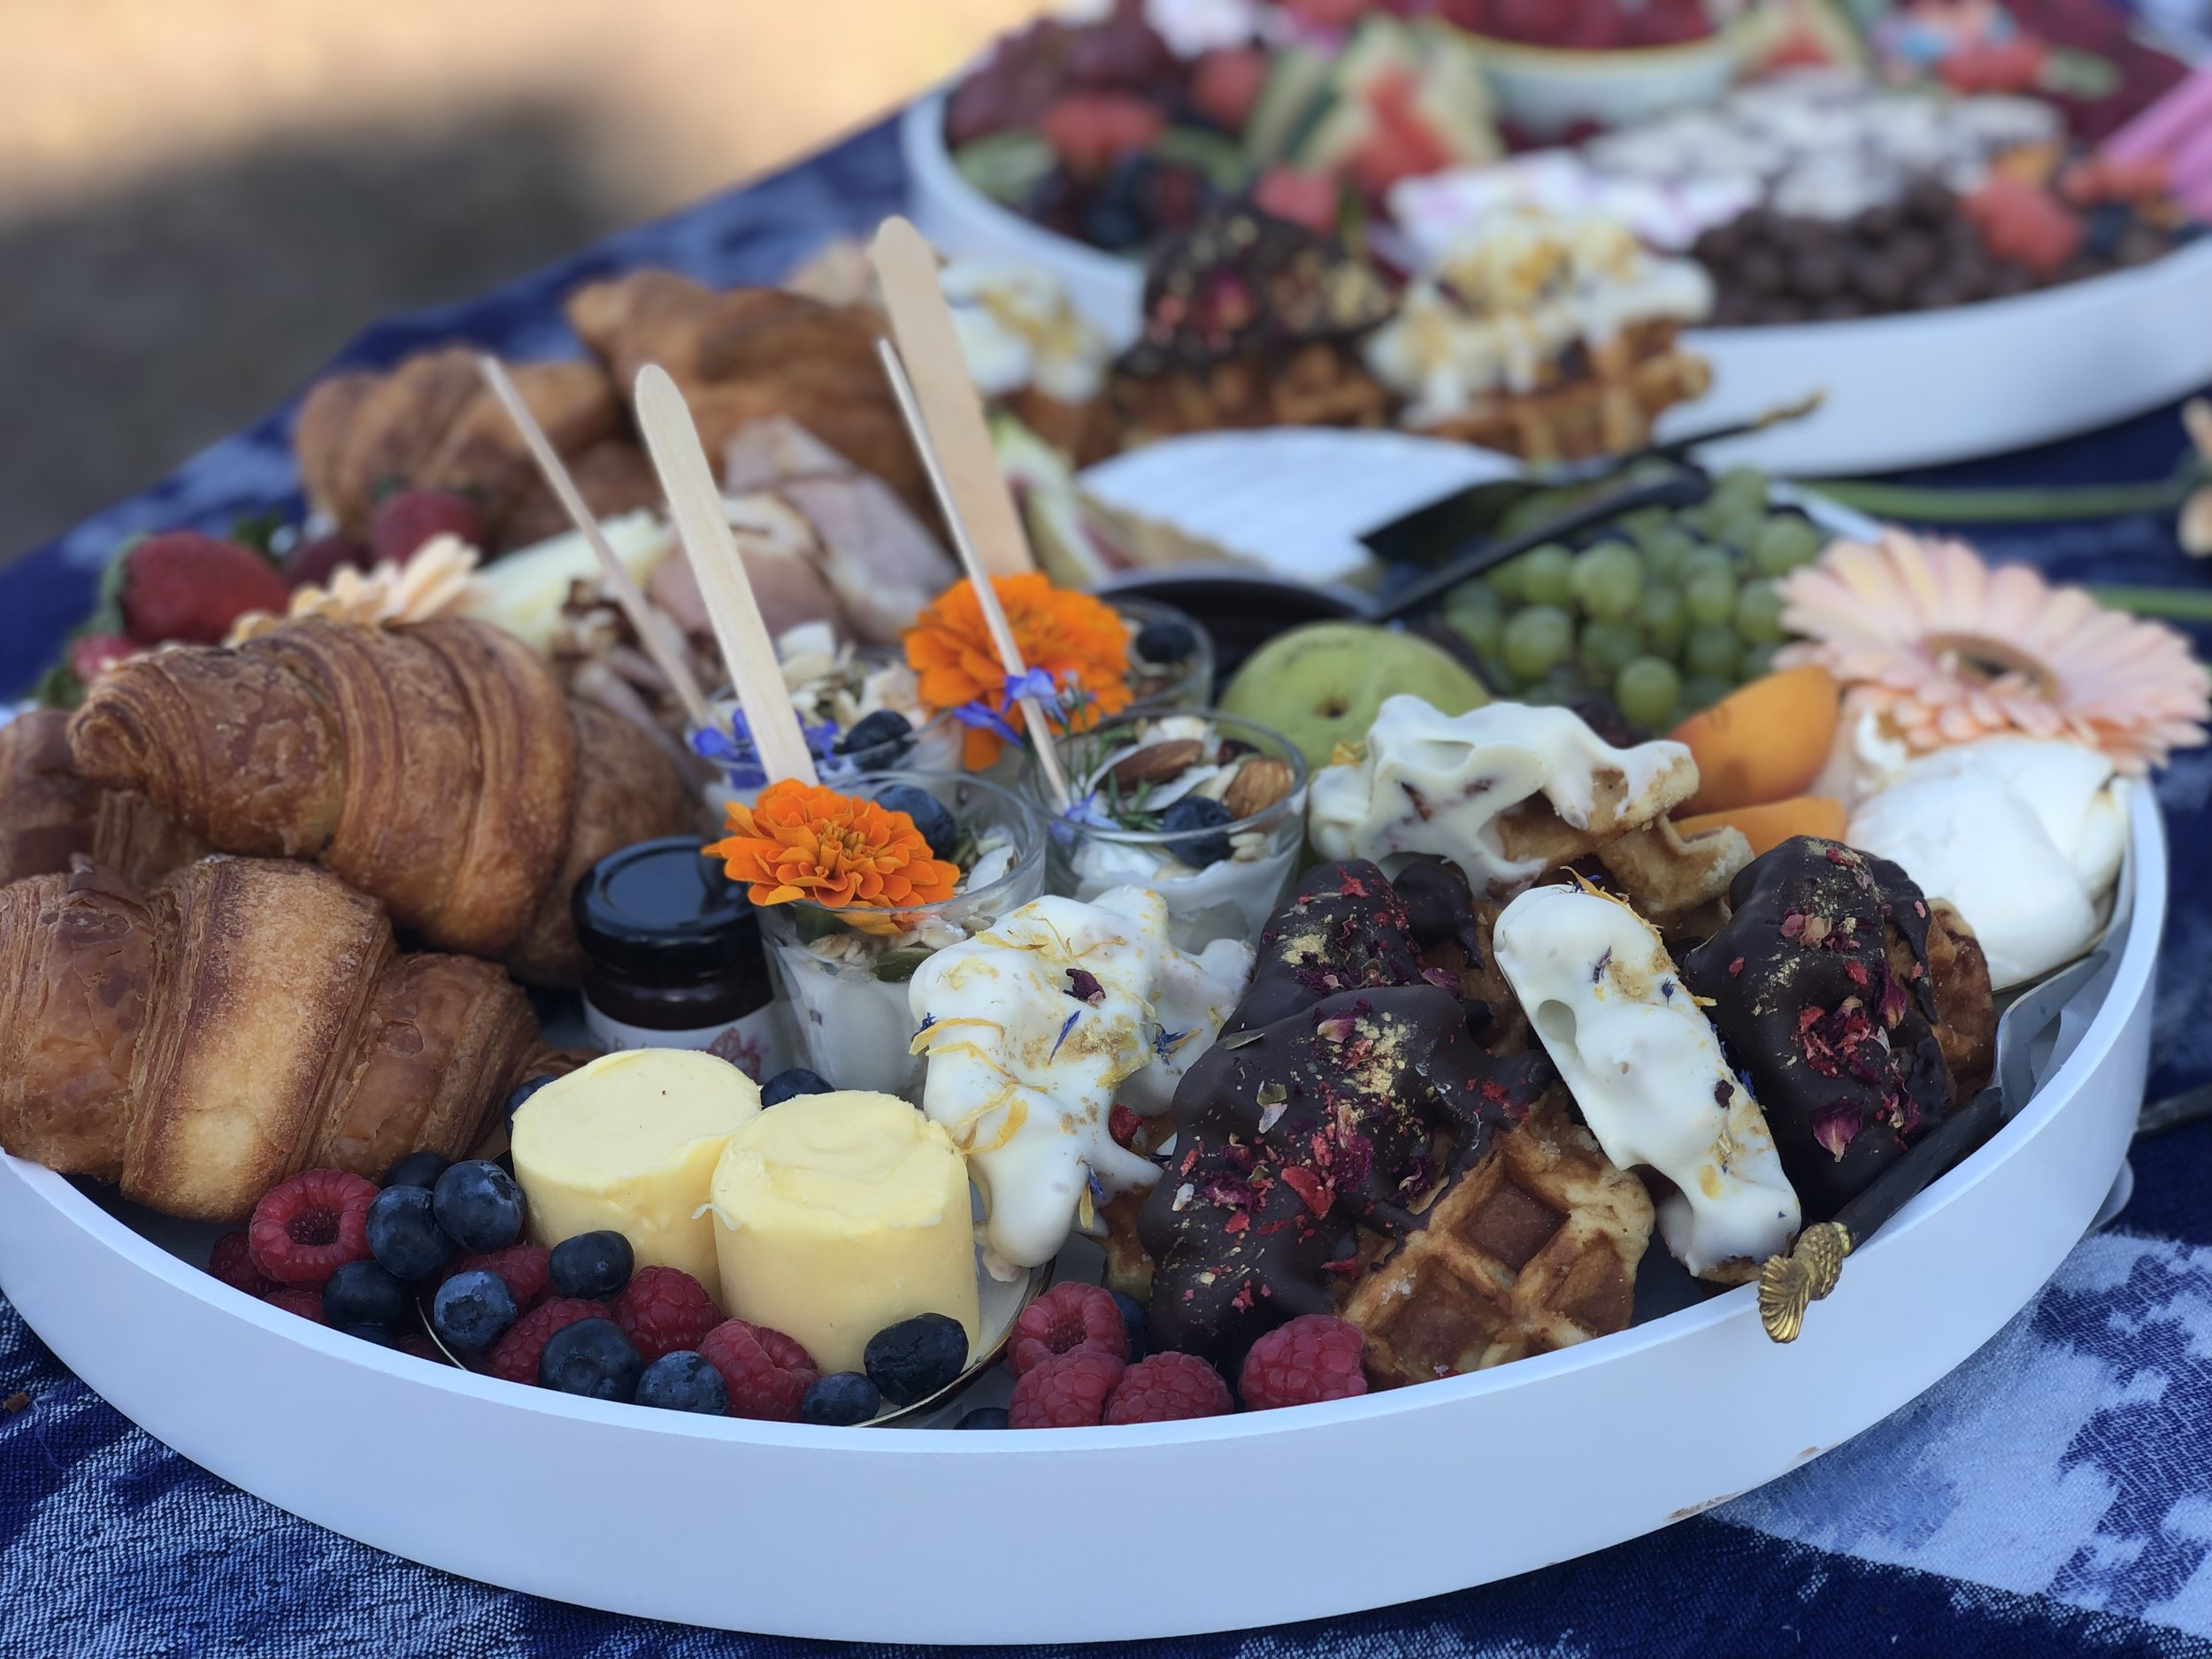 + HOW DO YOU BRUNCH?+ - Croissants, homemade chocolate dipped waffles, danish, yoghurt pots, jams, butter, brie, Jarlsberg cheese, triple smoked ham, fresh fruit & the graze*55cm boardFeeds approximately 10 adults$180.00